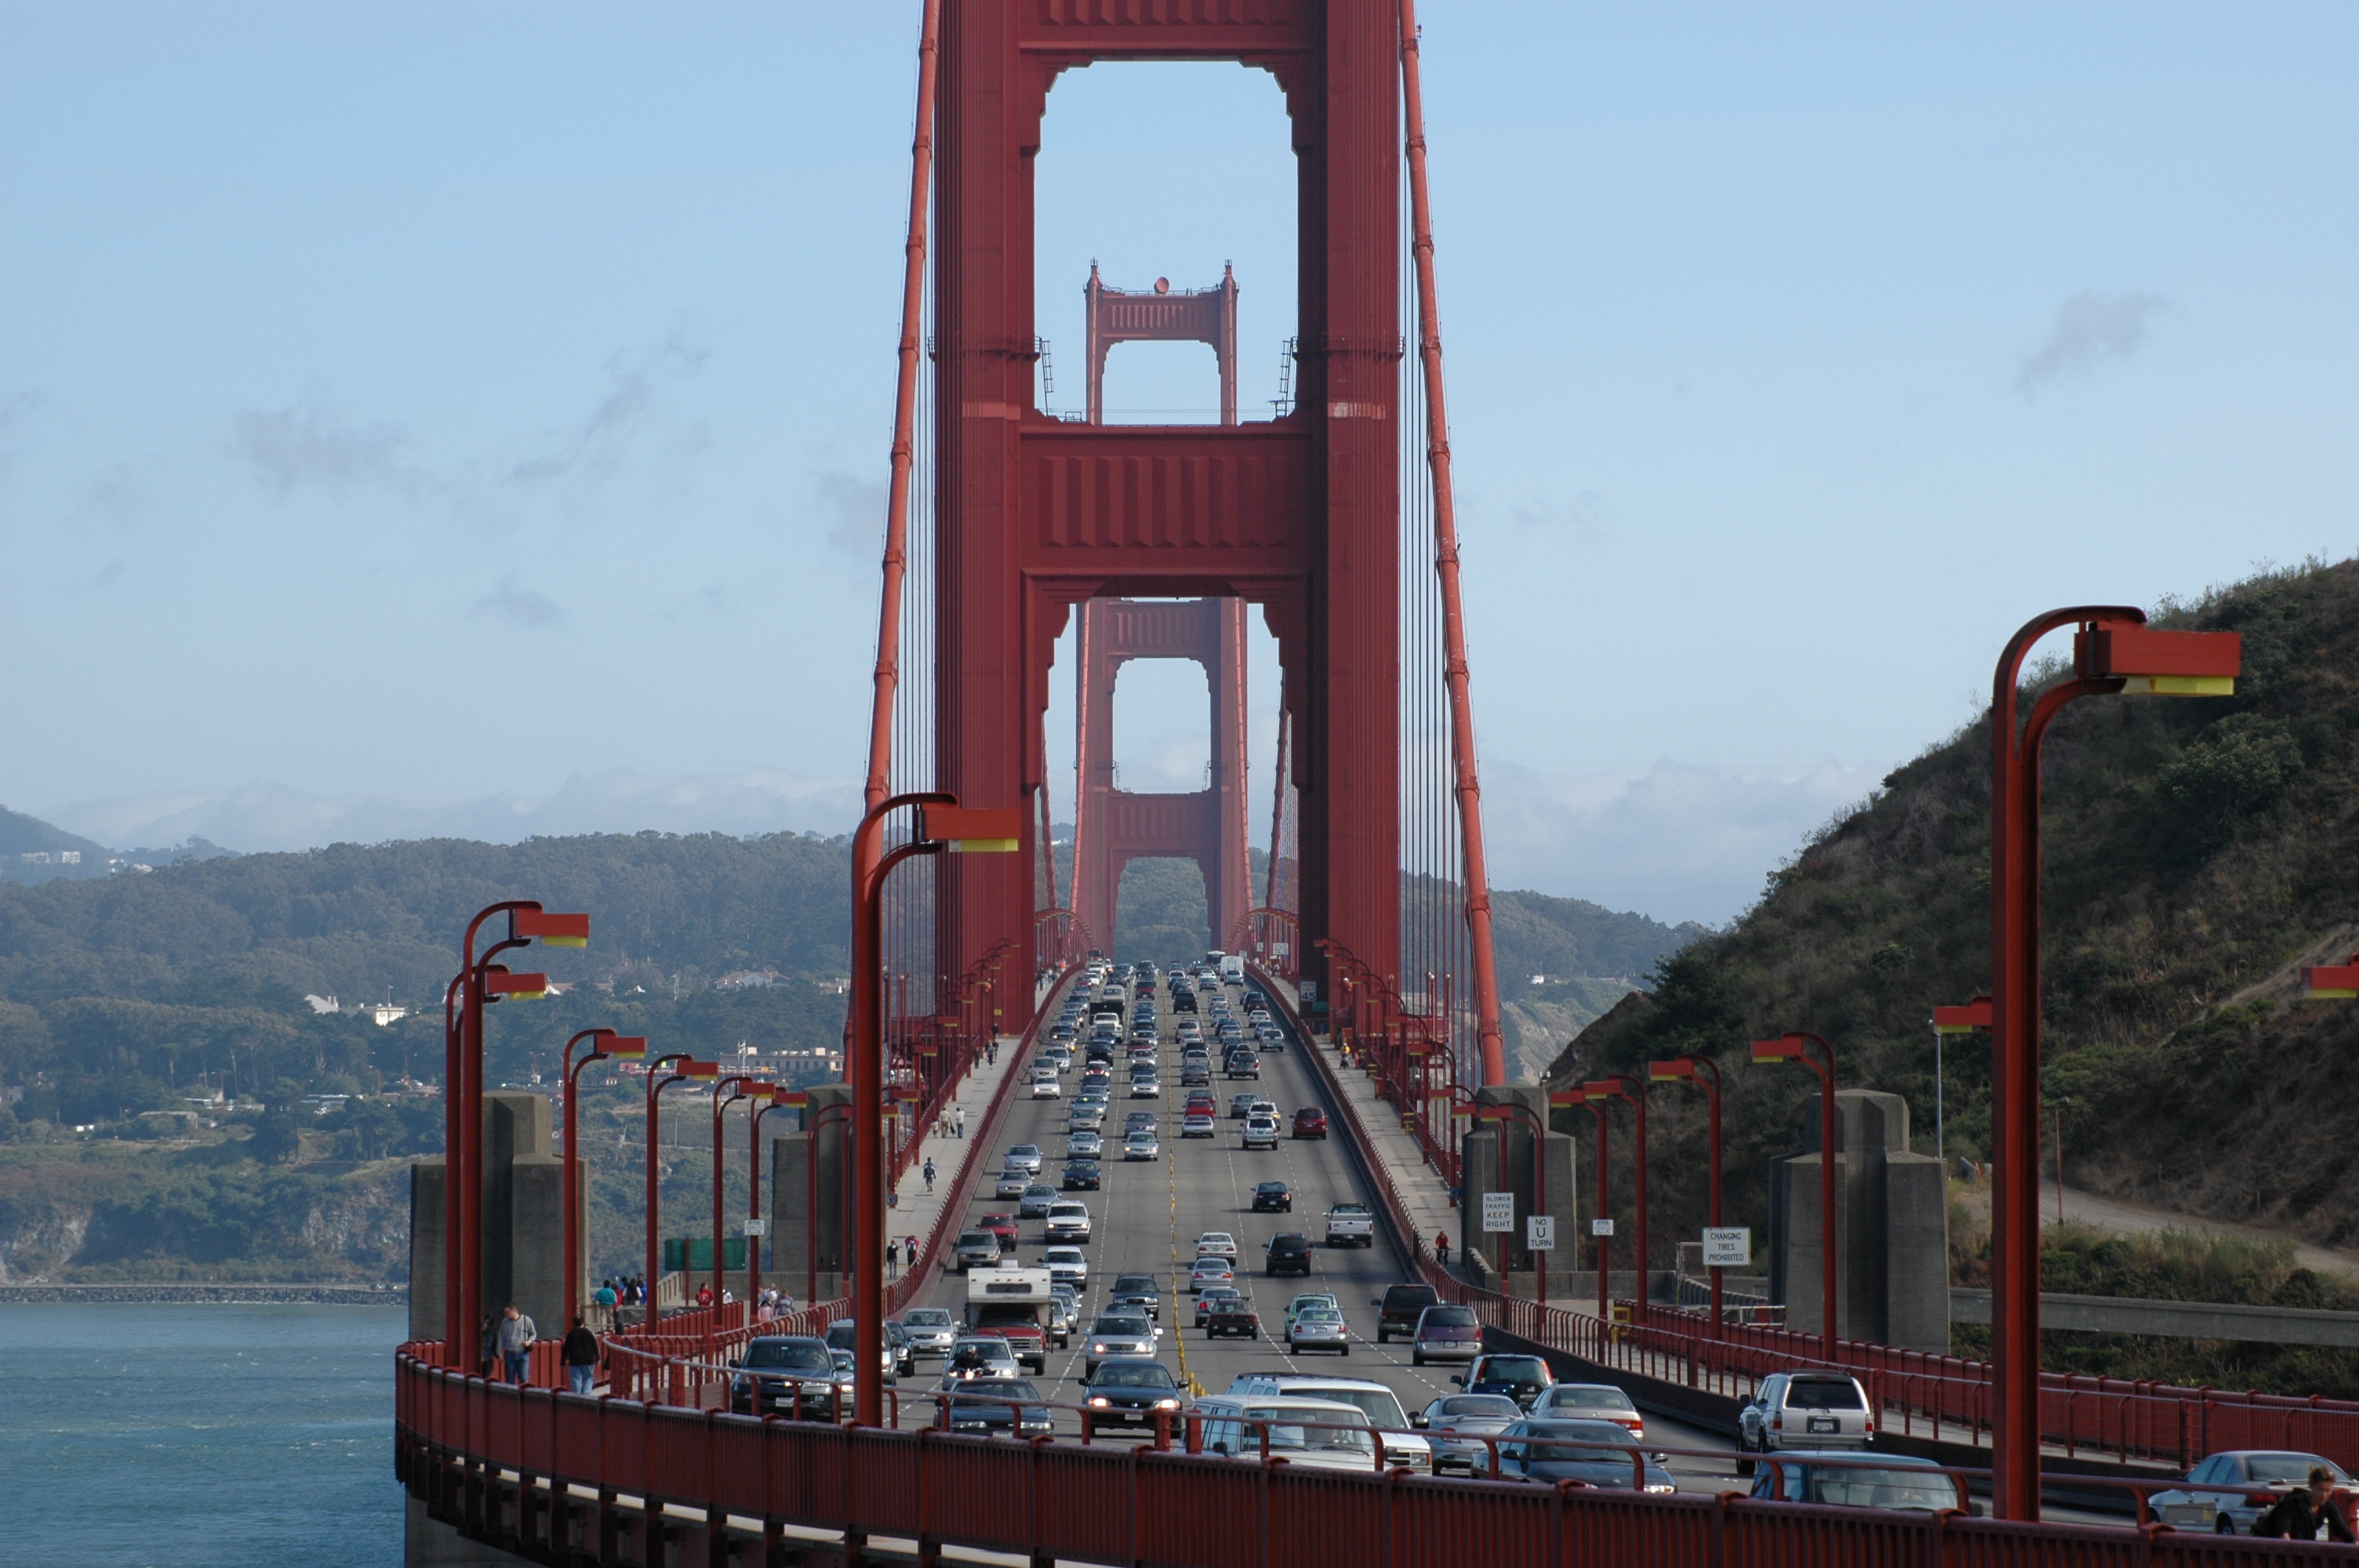 Construction on Doyle Drive causes delays on Golden Gate Bridge. Photo by Henner Zeller.